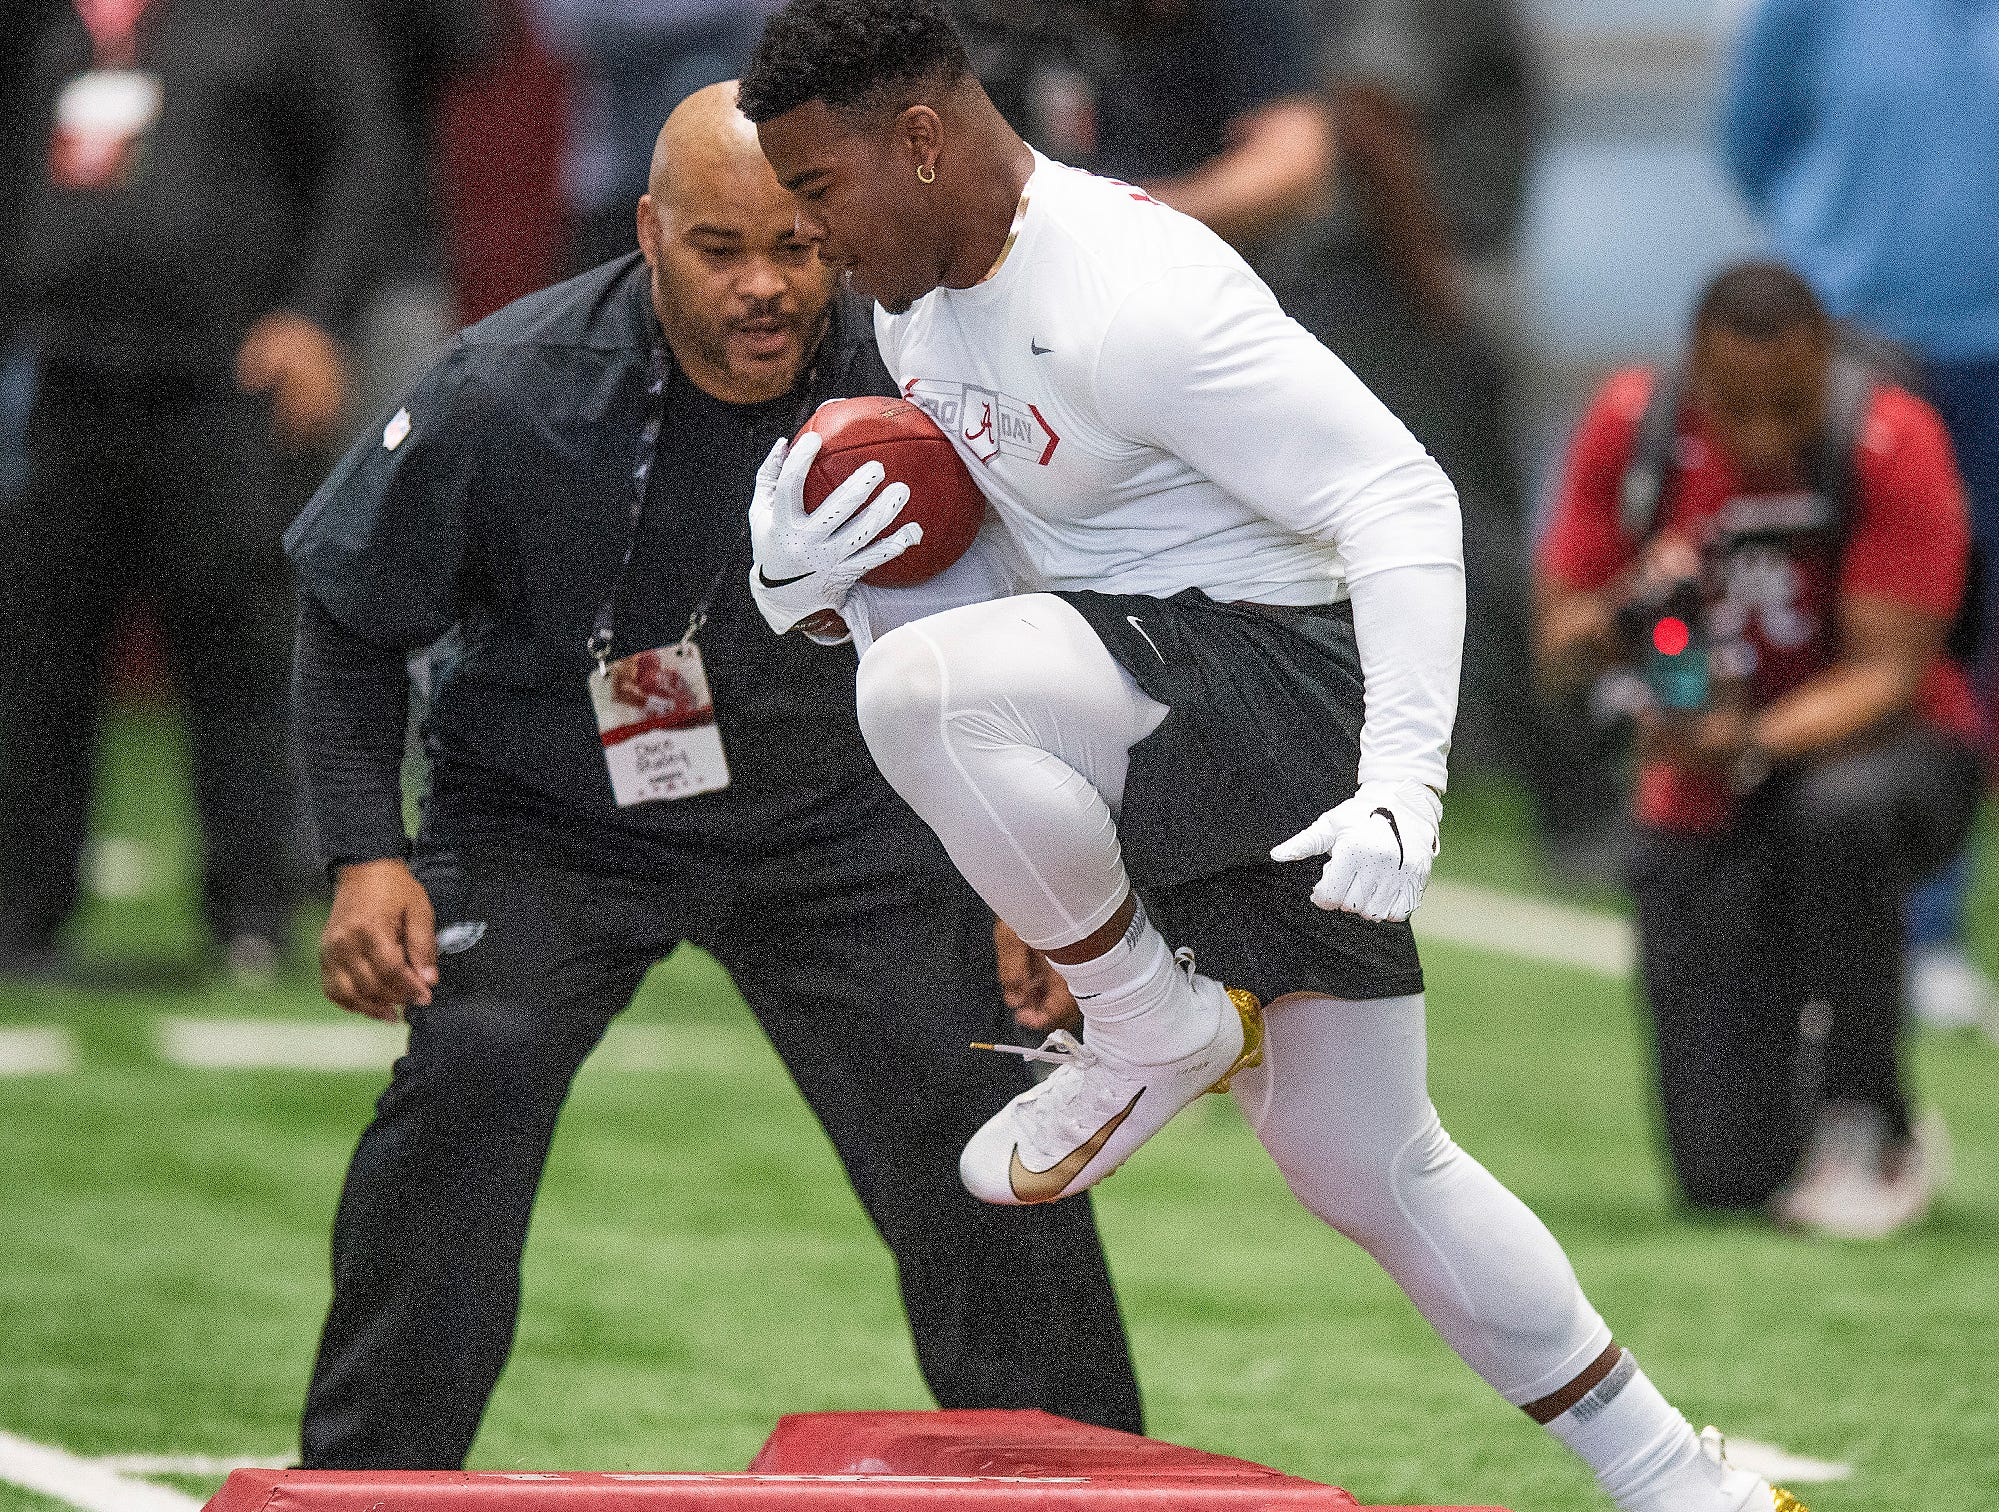 Alabama running back Damien Harris runs drills during Pro Day on the University of Alabama campus in Tuscaloosa, Ala., on Tuesday March 19, 2019.